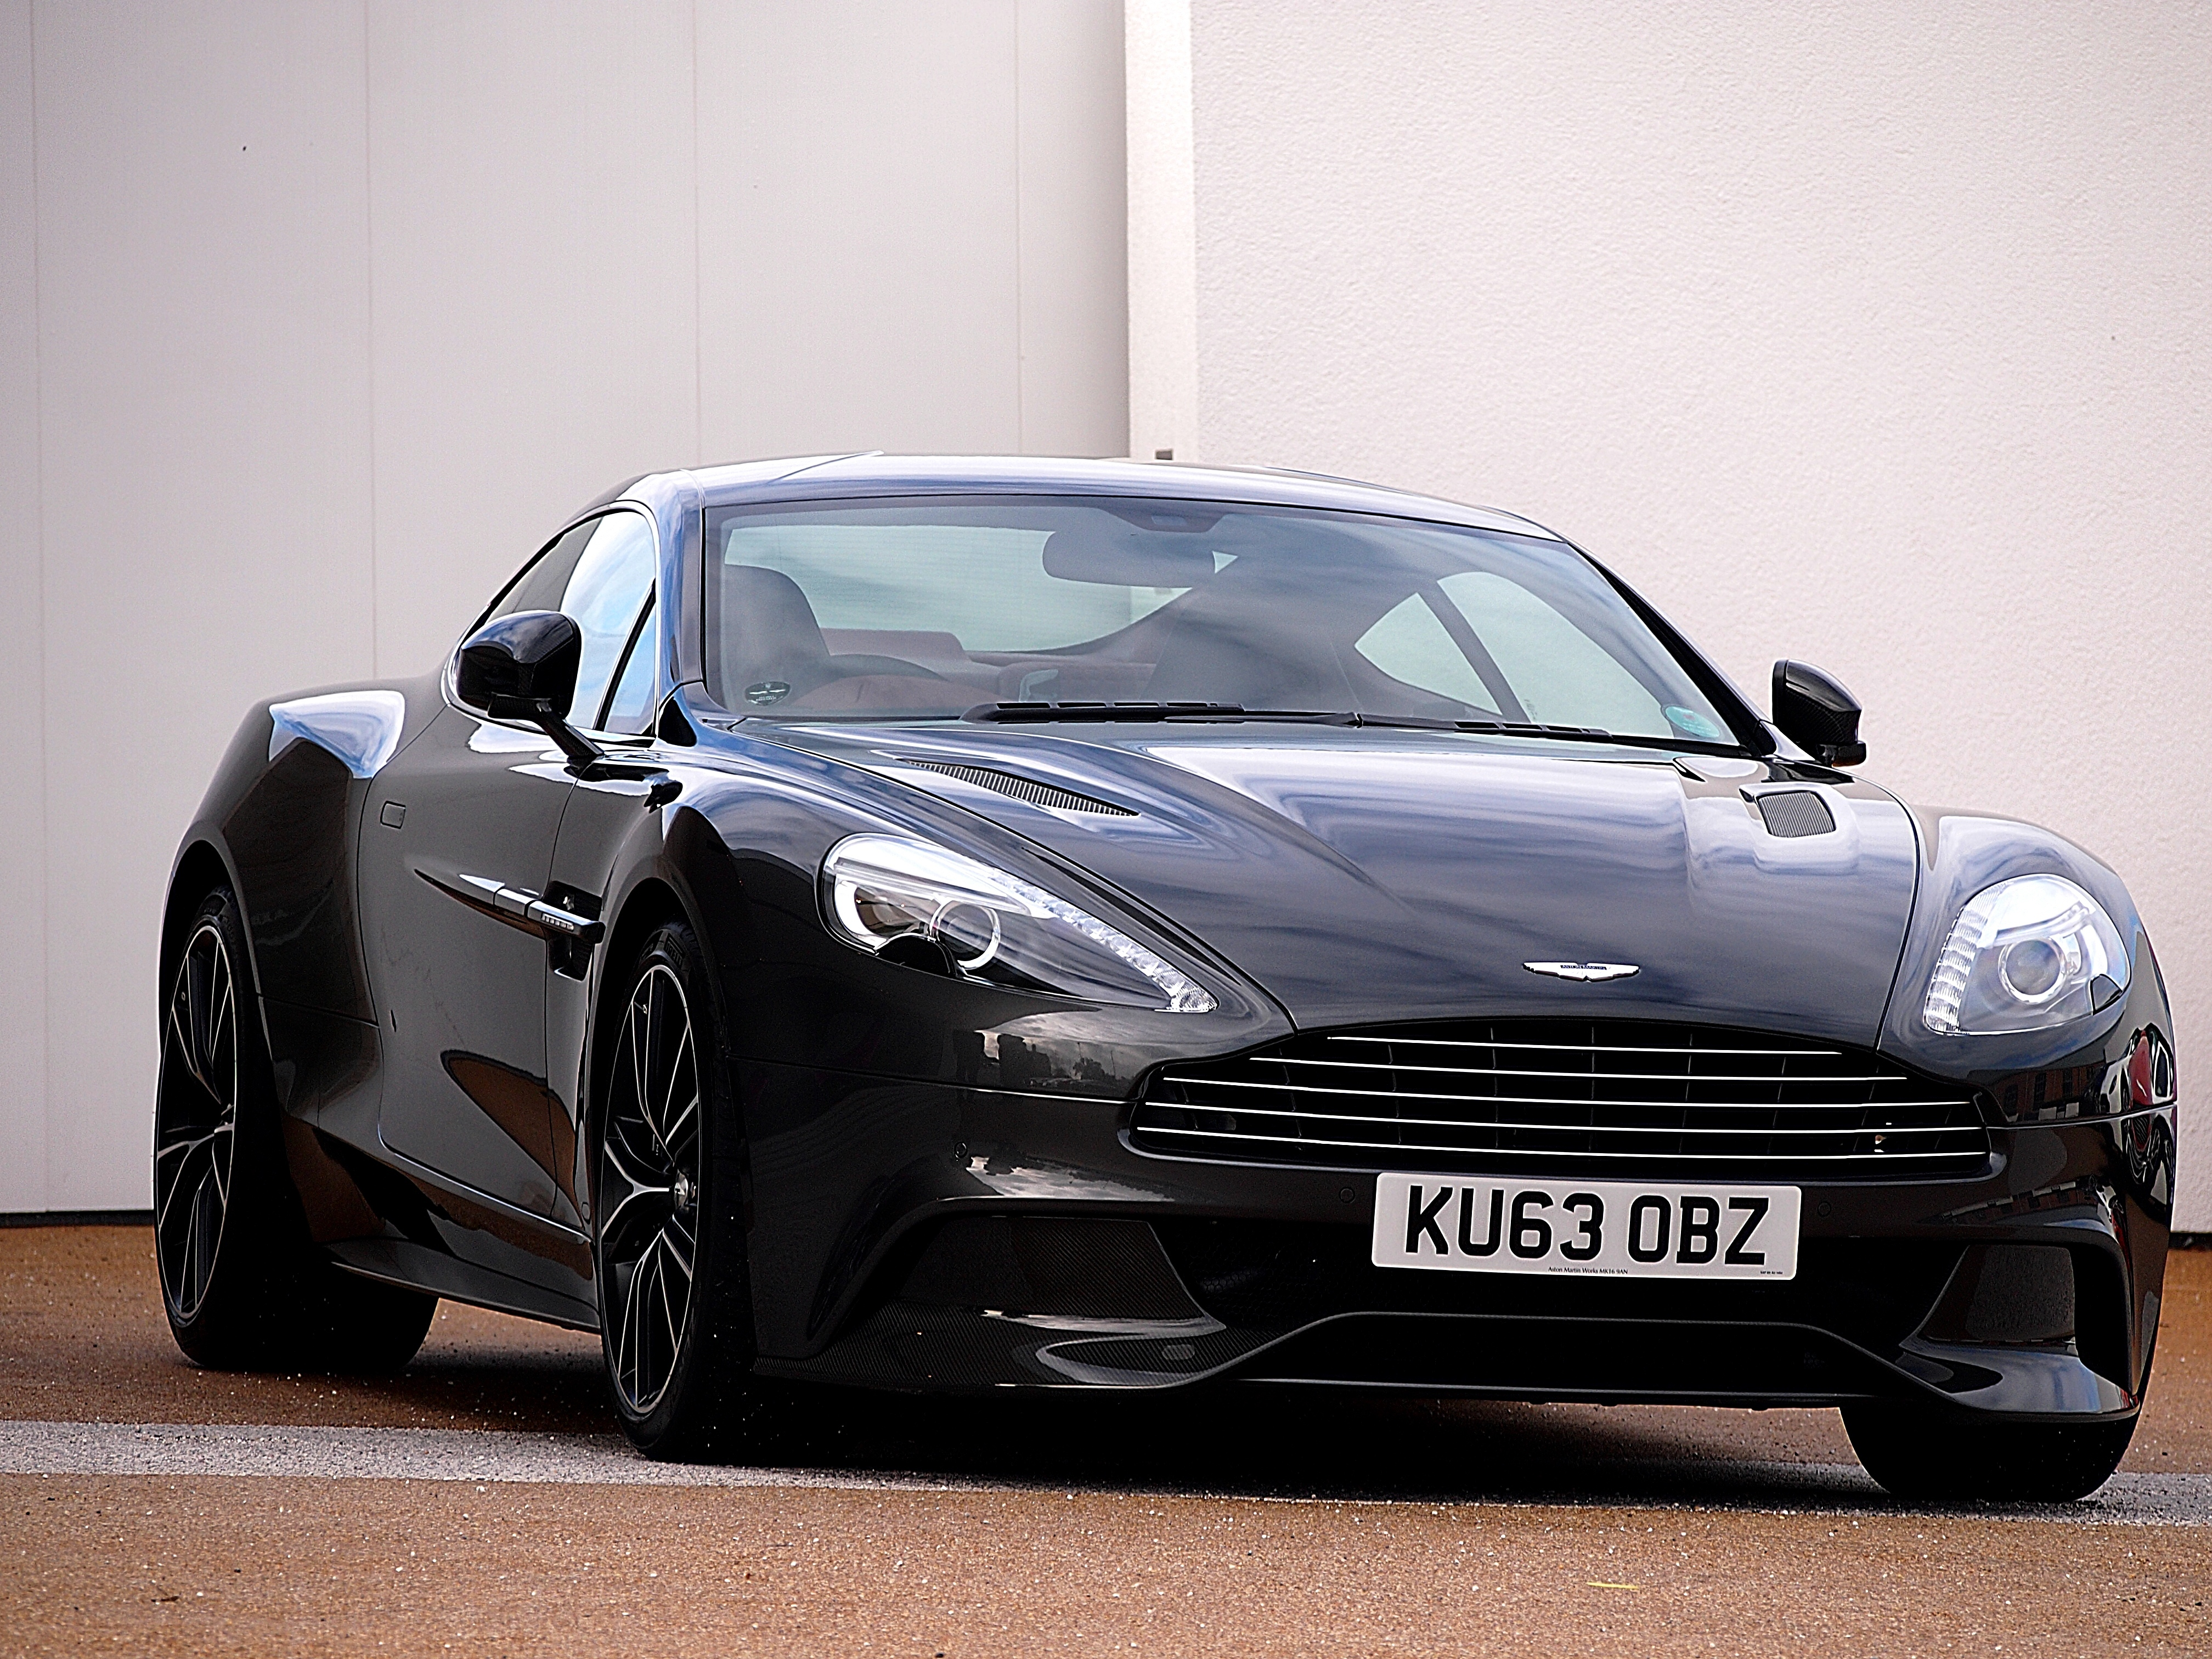 141400 download wallpaper Tuning, Aston Martin, Cars, Front View screensavers and pictures for free